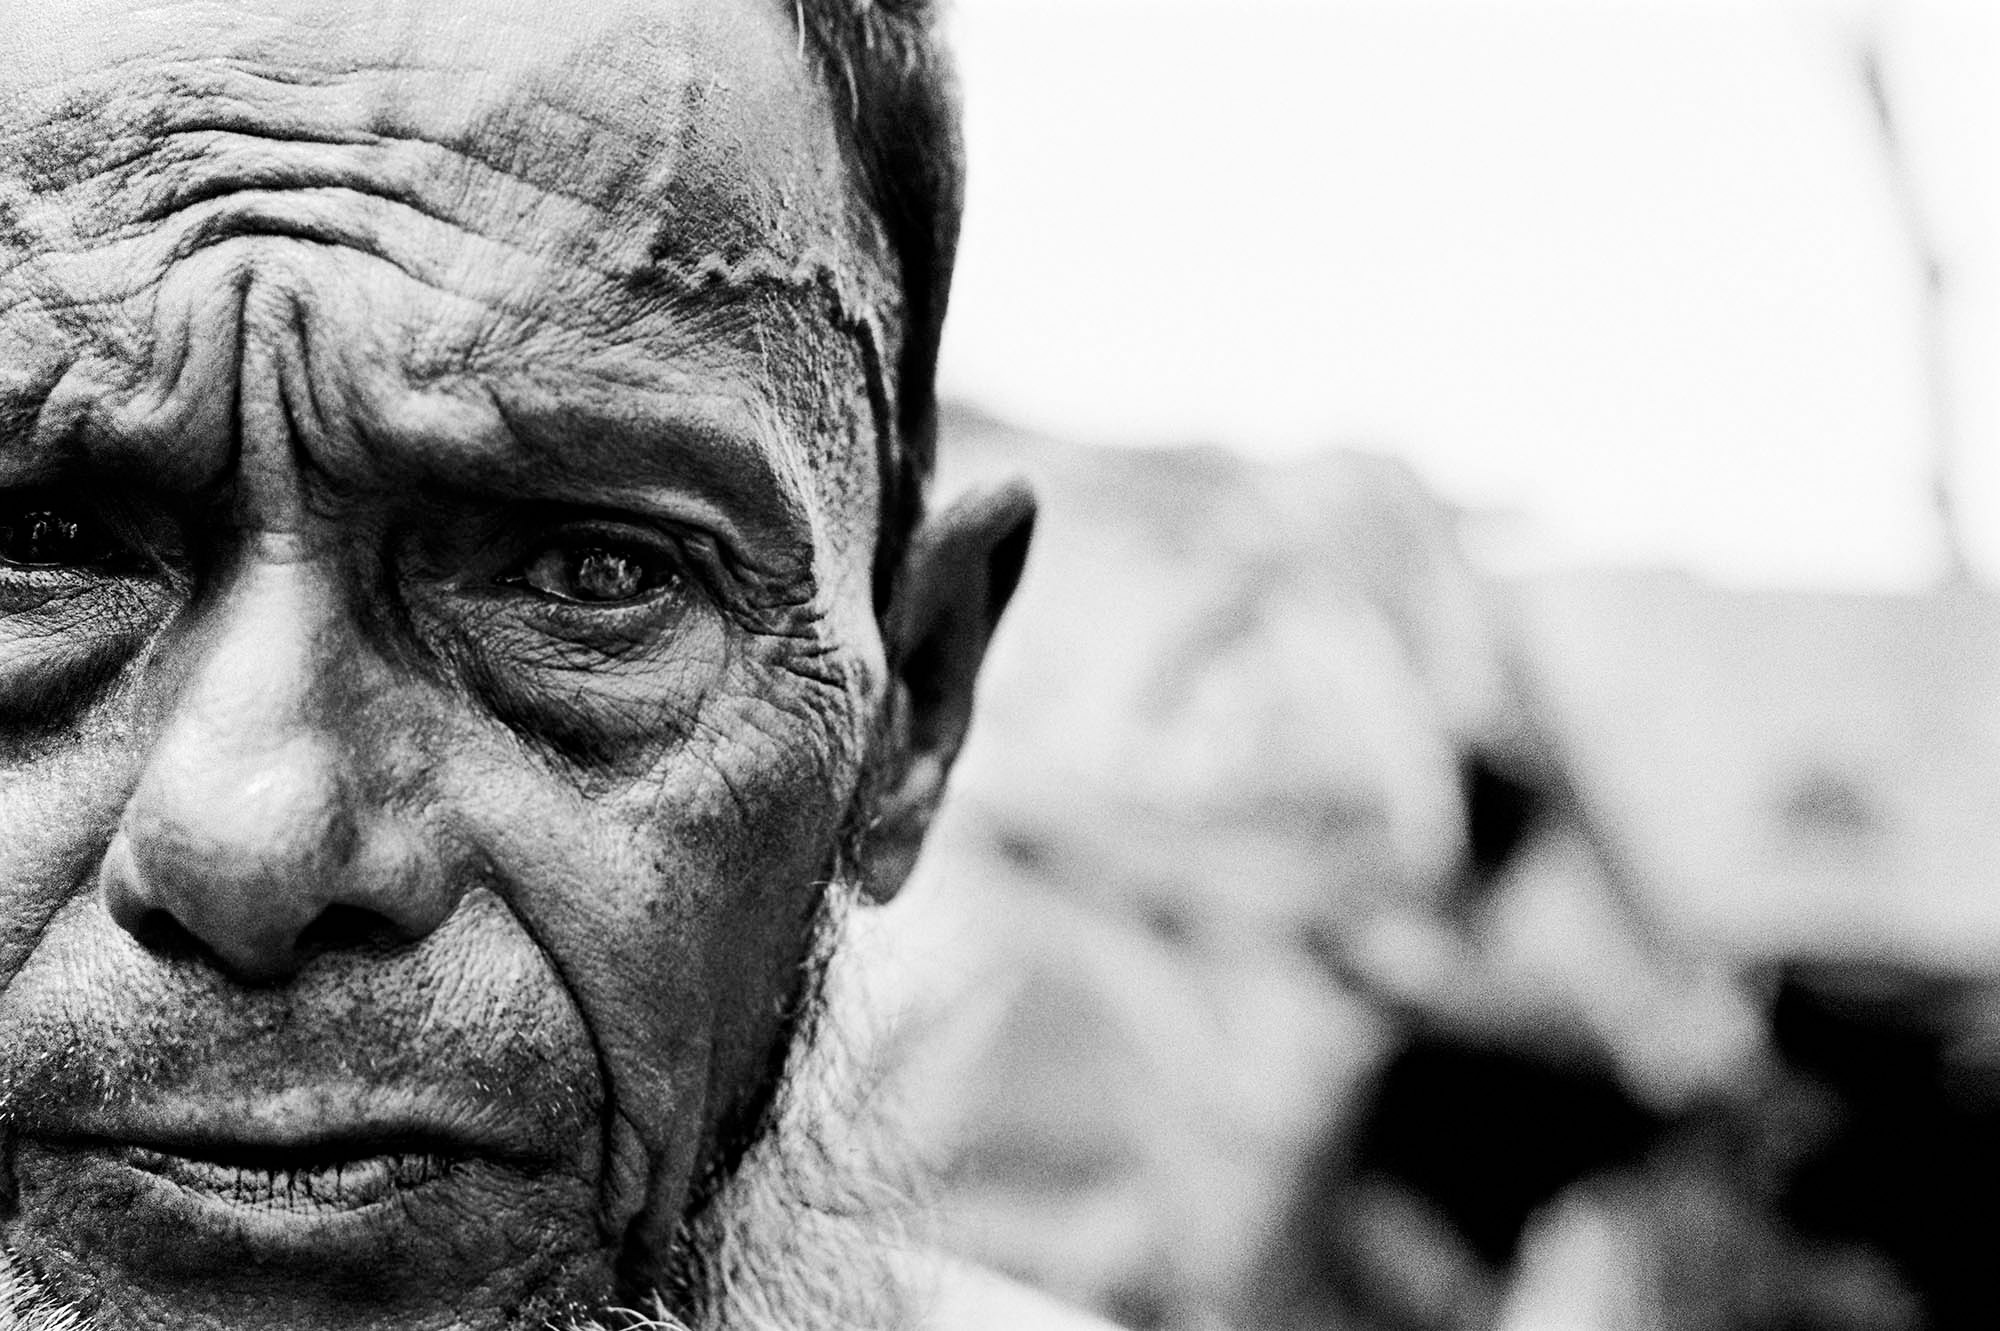 Blind in one eye after being beaten in the head during forced labor, this stateless Rohingya man fled from Burma in the mid 1990's and is one of an estimated 250,000 stateless Rohingya living in the southern part of neighboring Bangladesh.